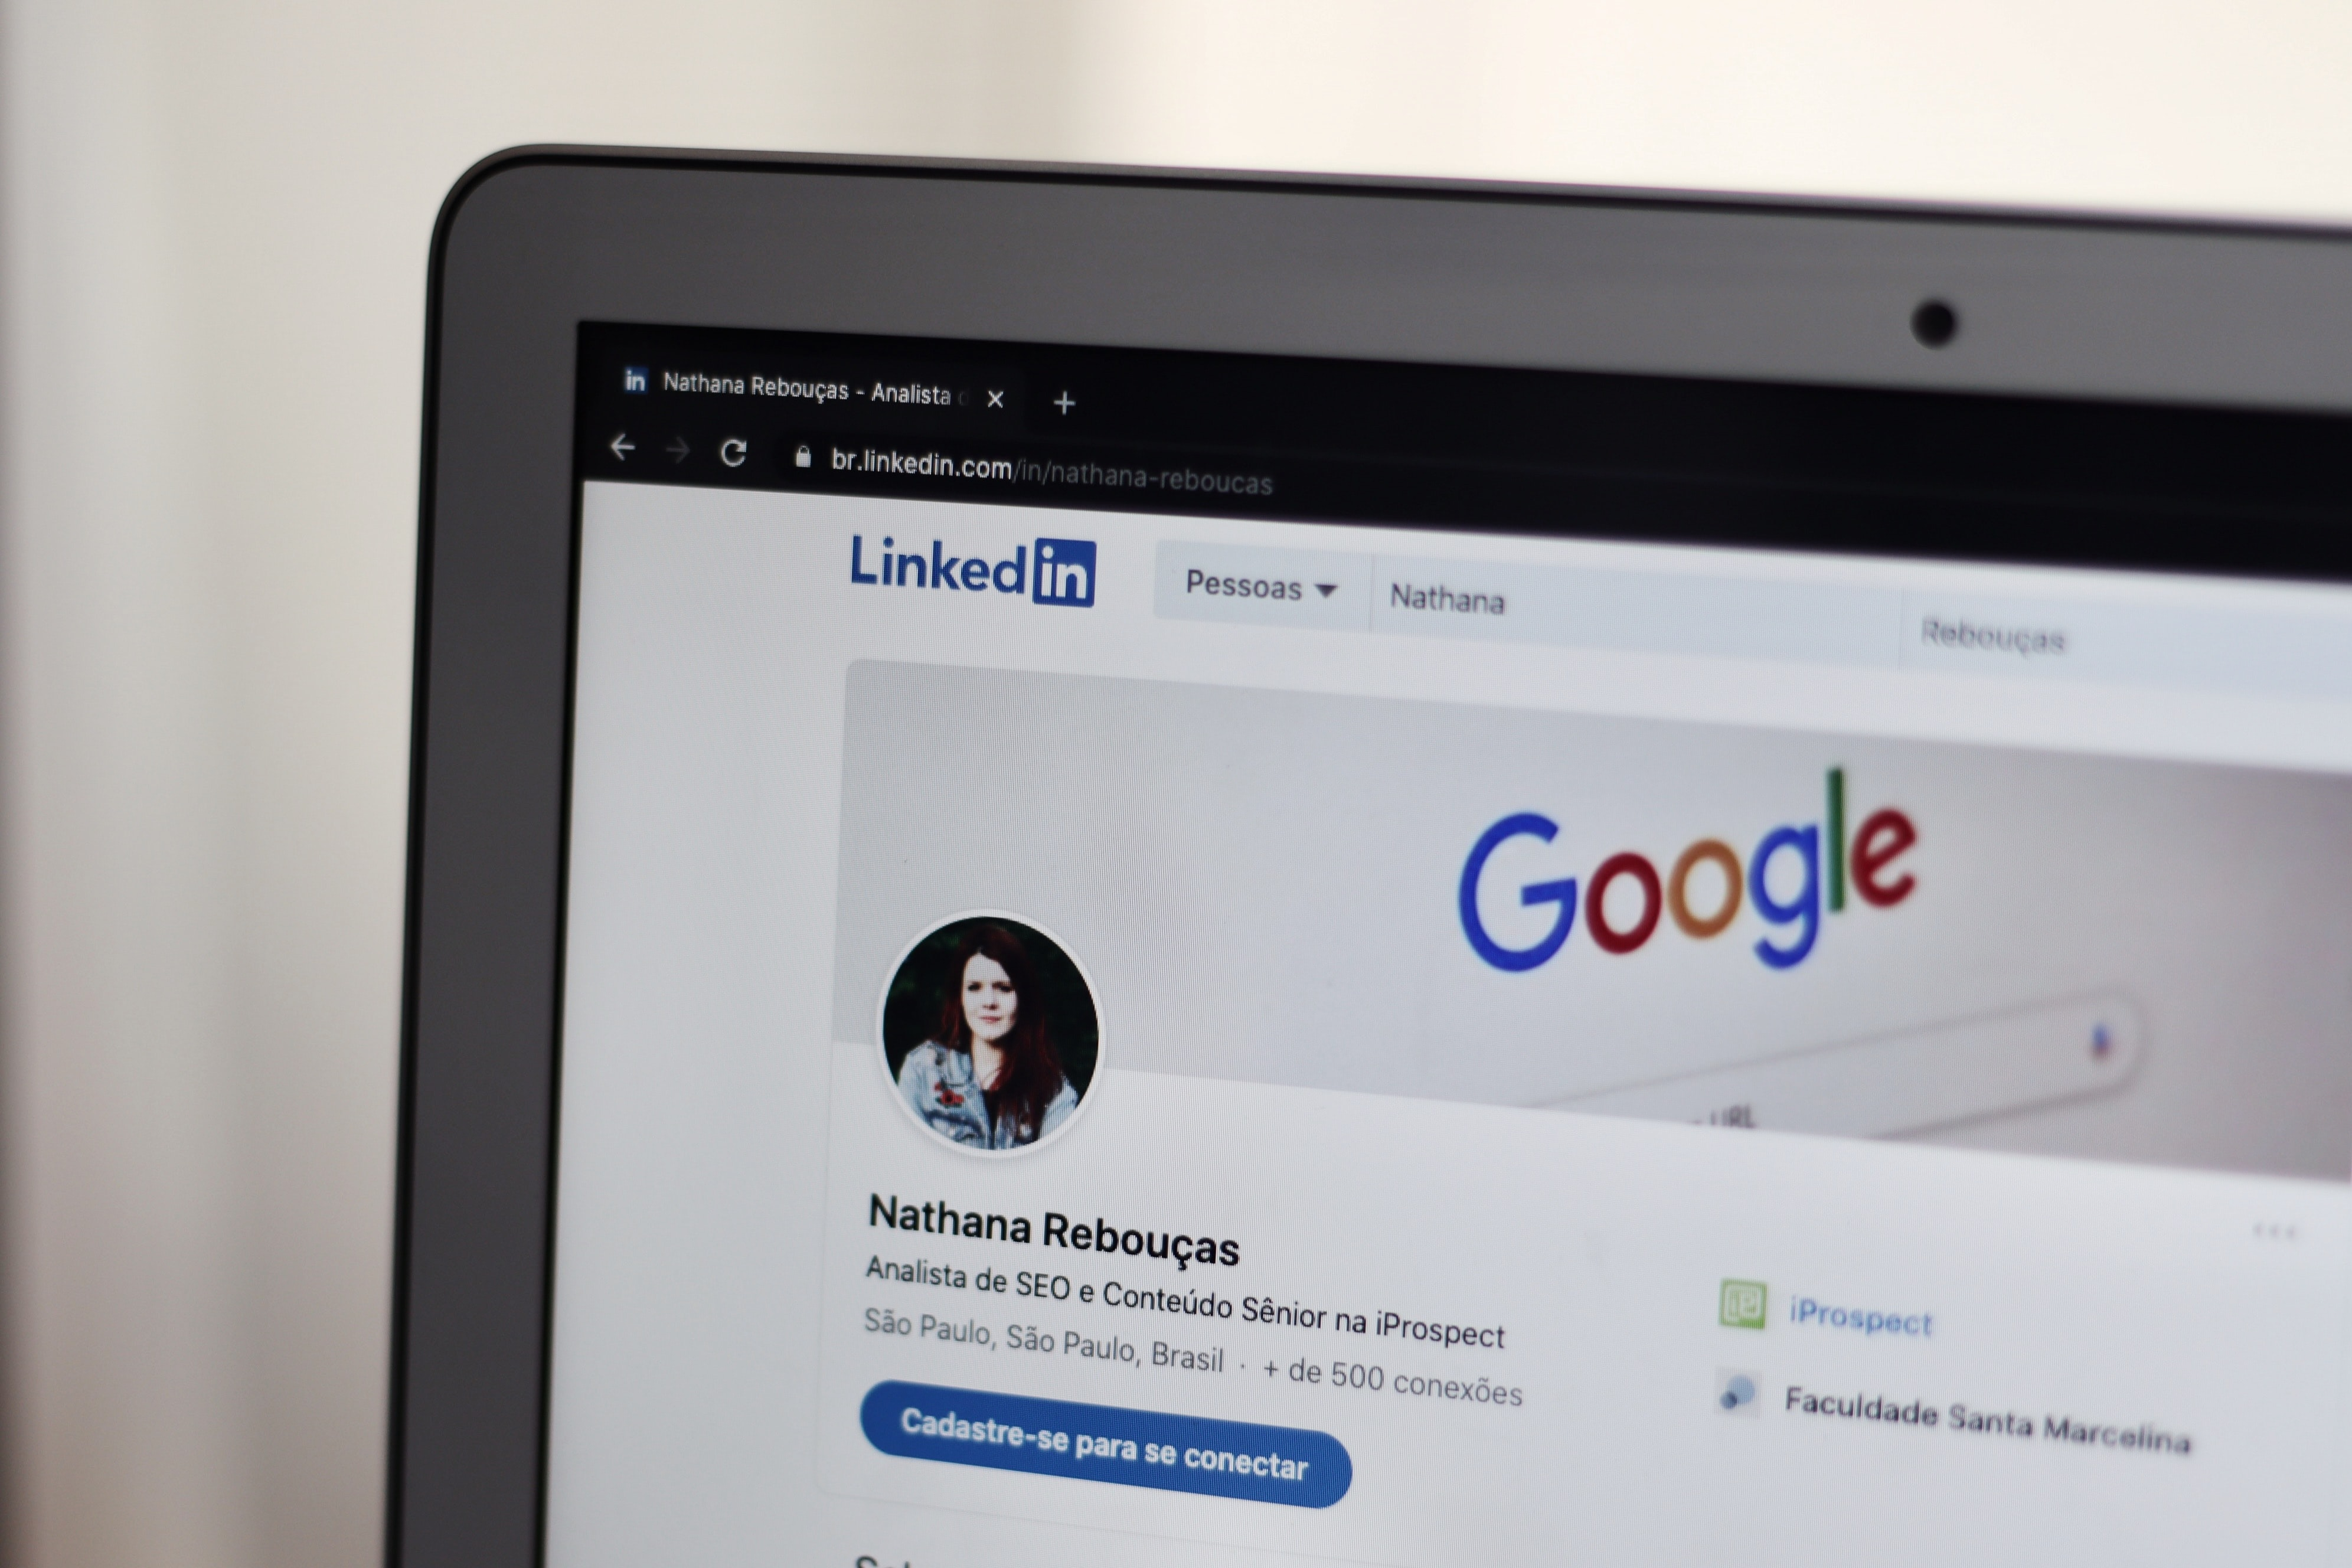 Reaching out to industry experts on LinkedIn